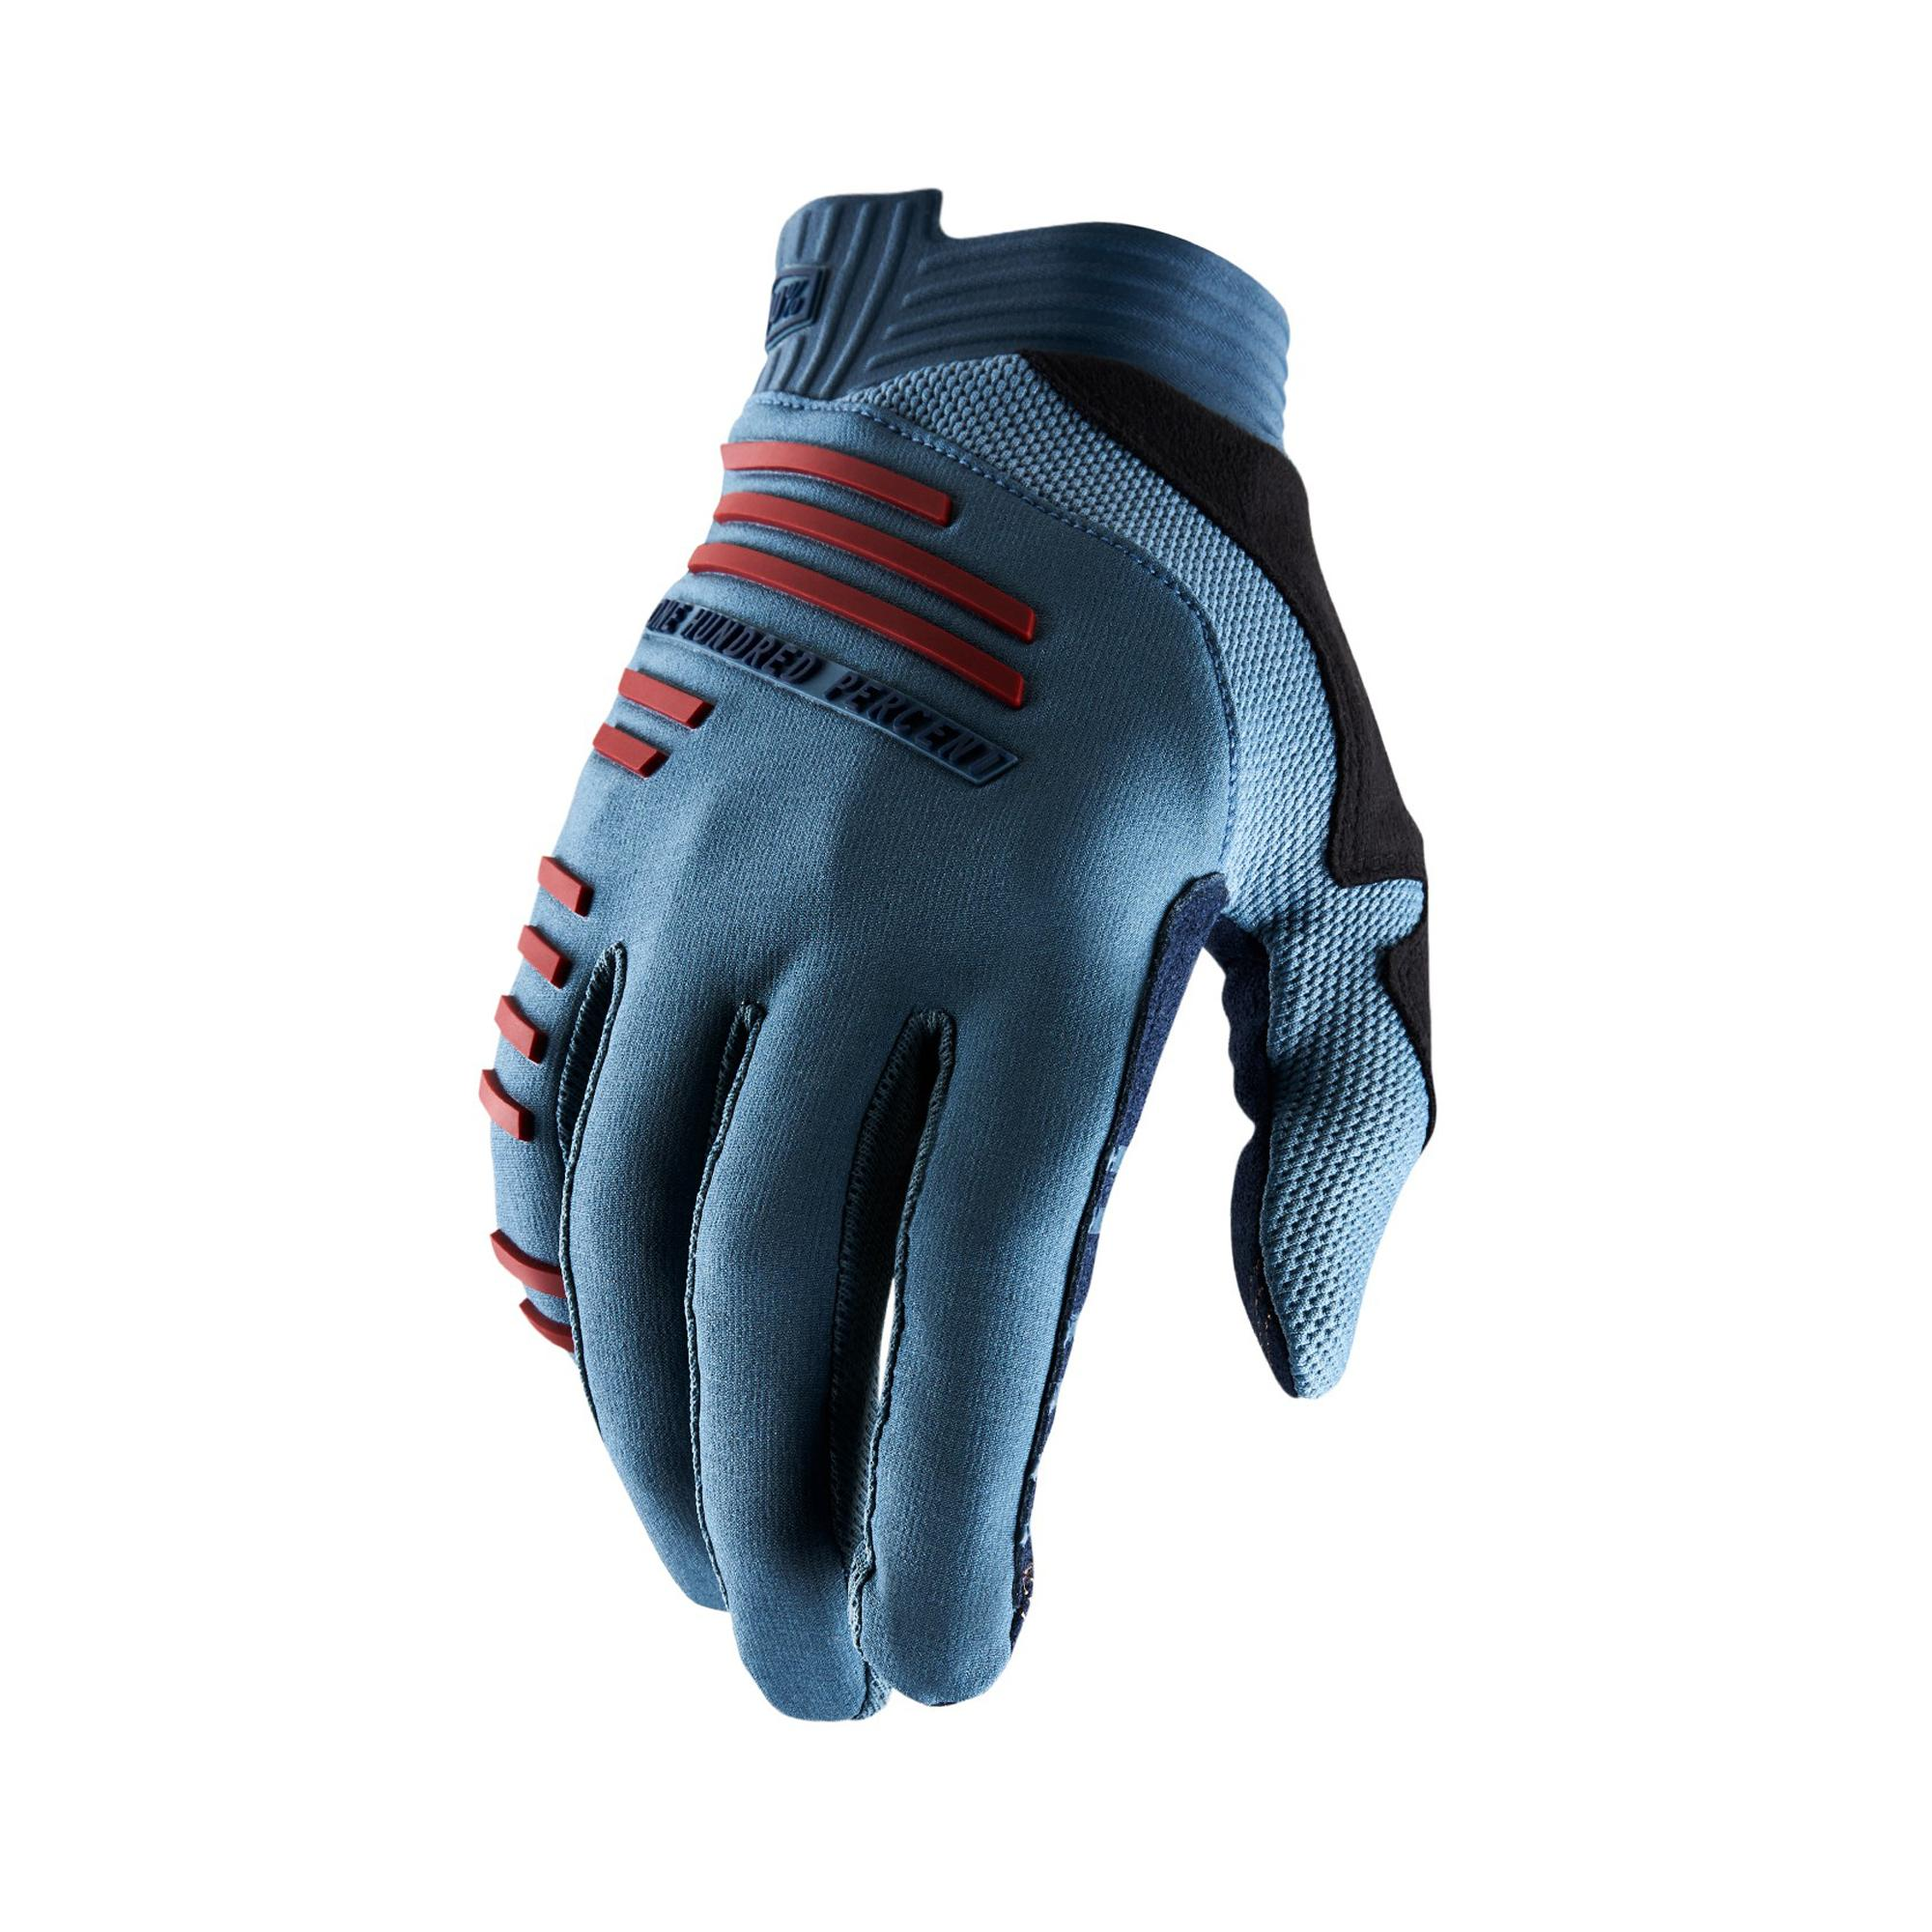 R-CORE Glove Slate Blue -